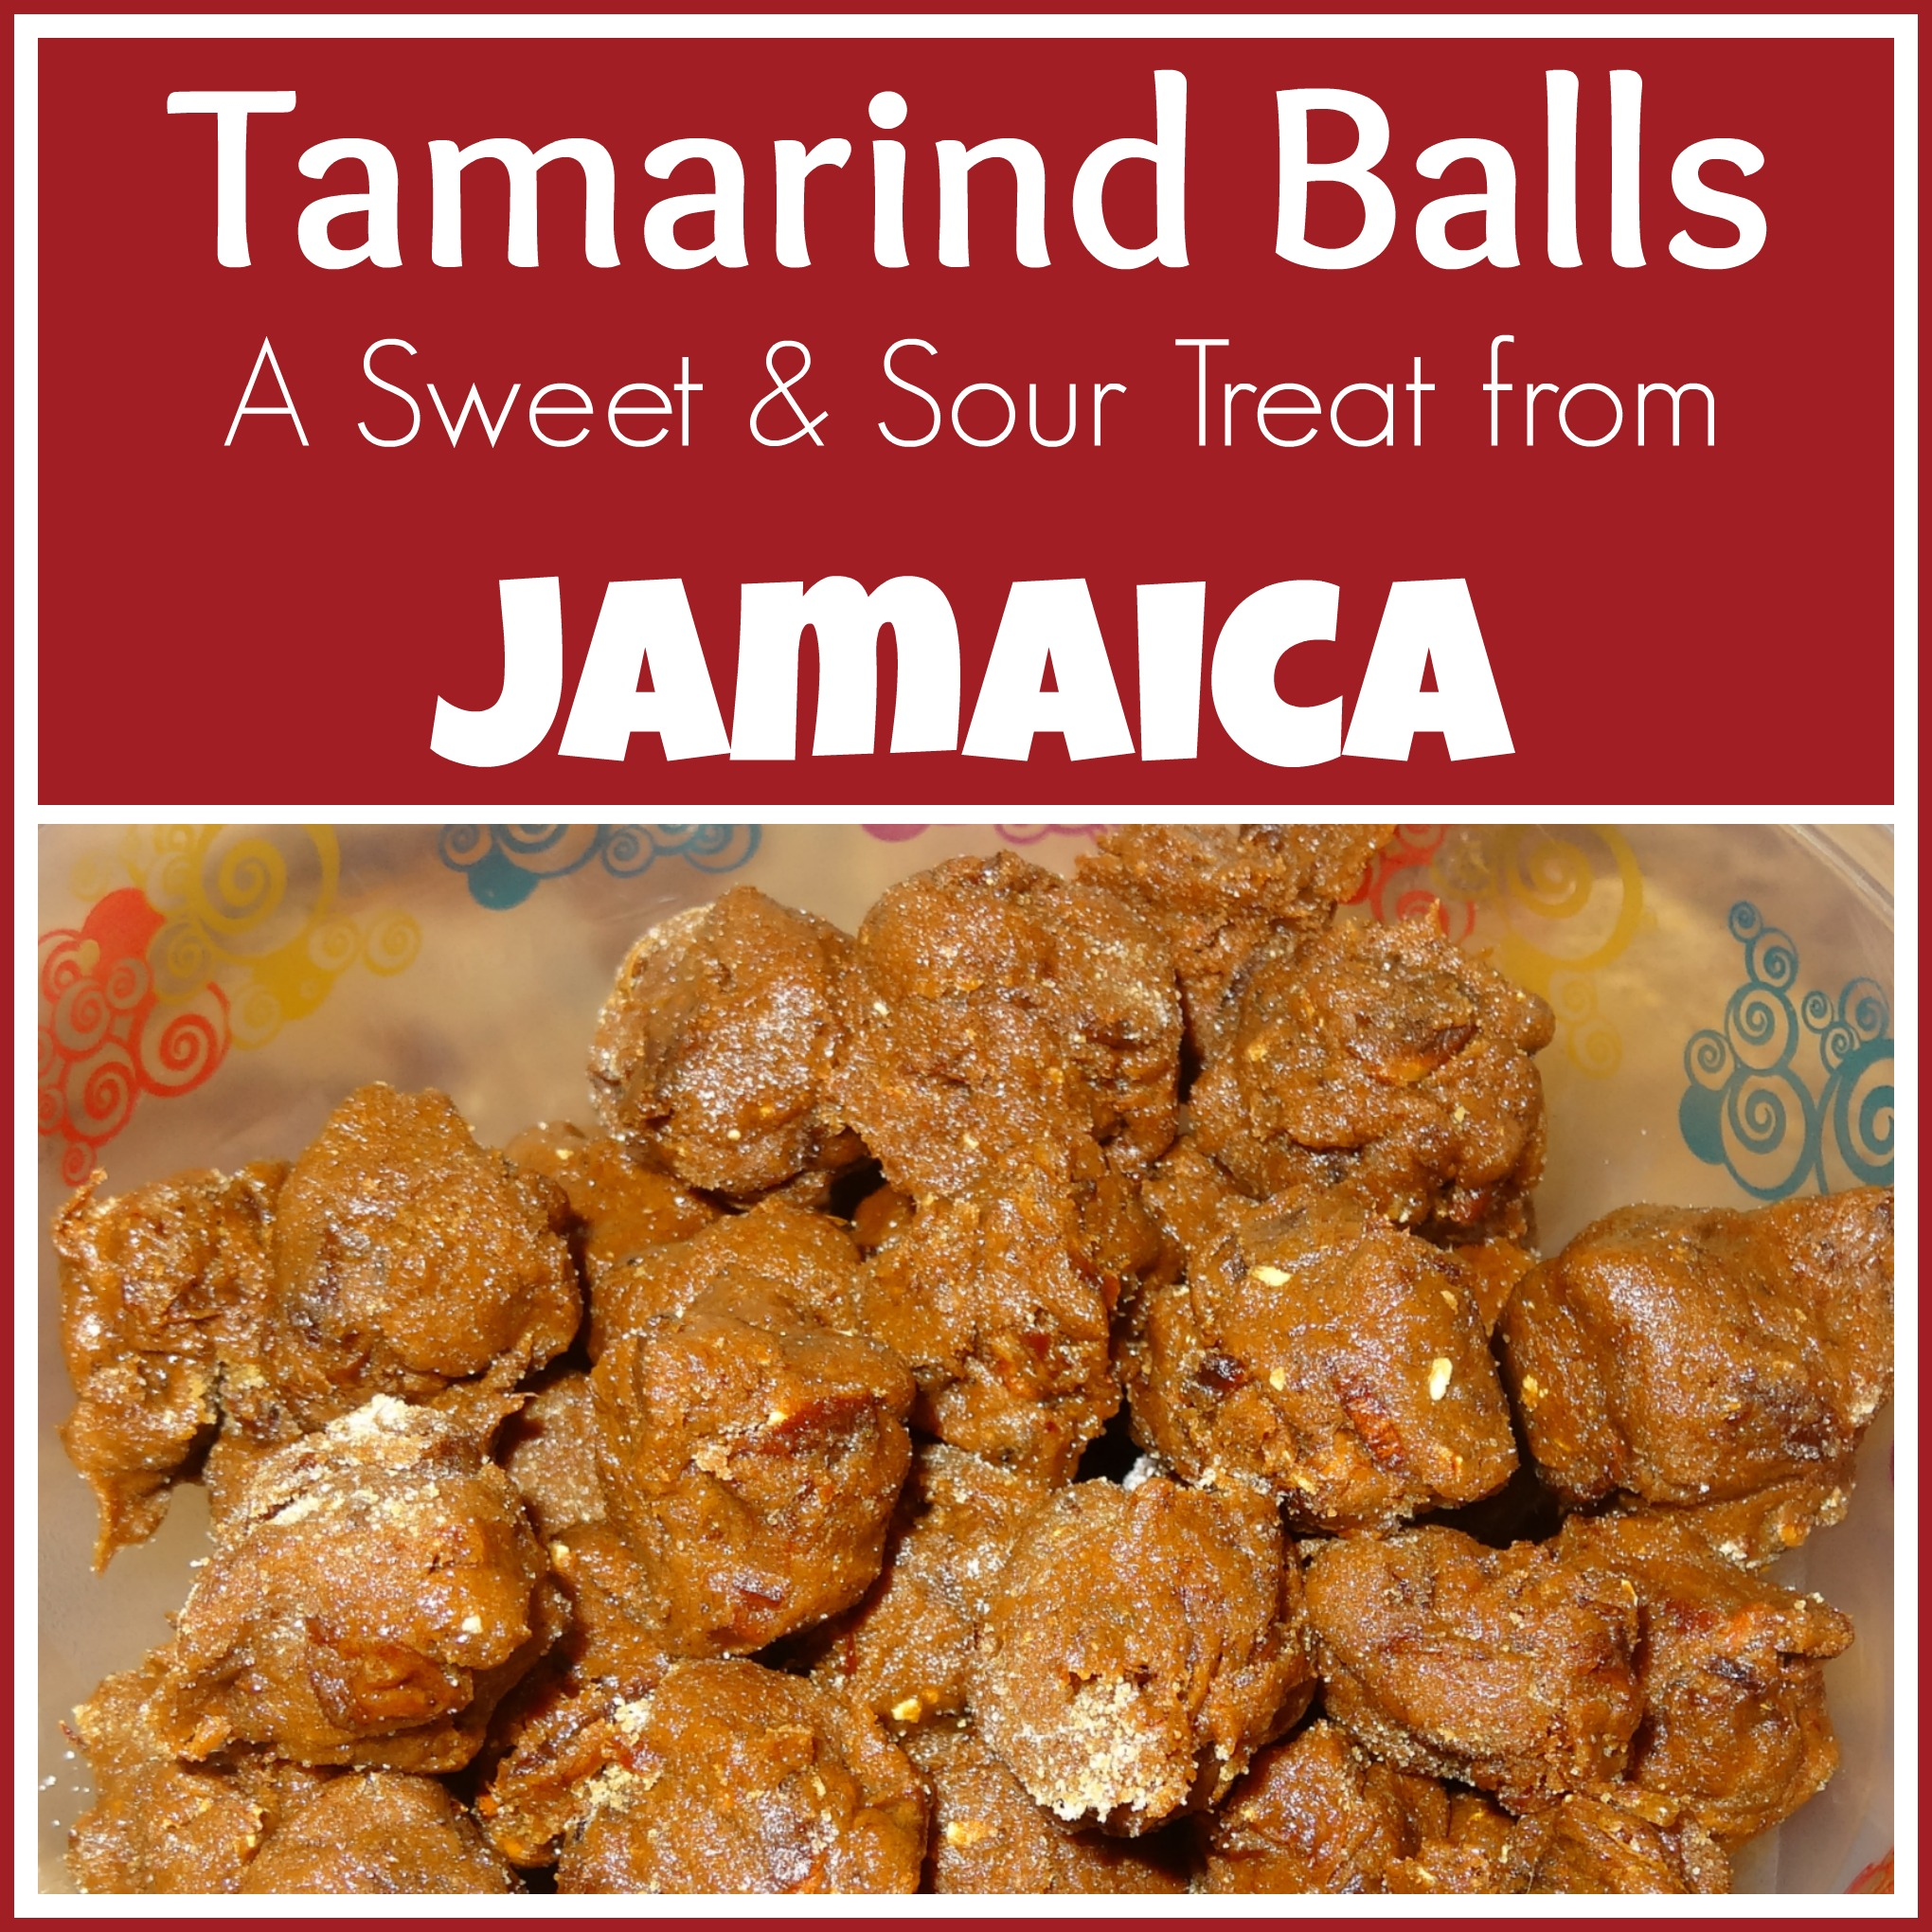 Sweet and sour treat from jamaica tamarind balls around the world in